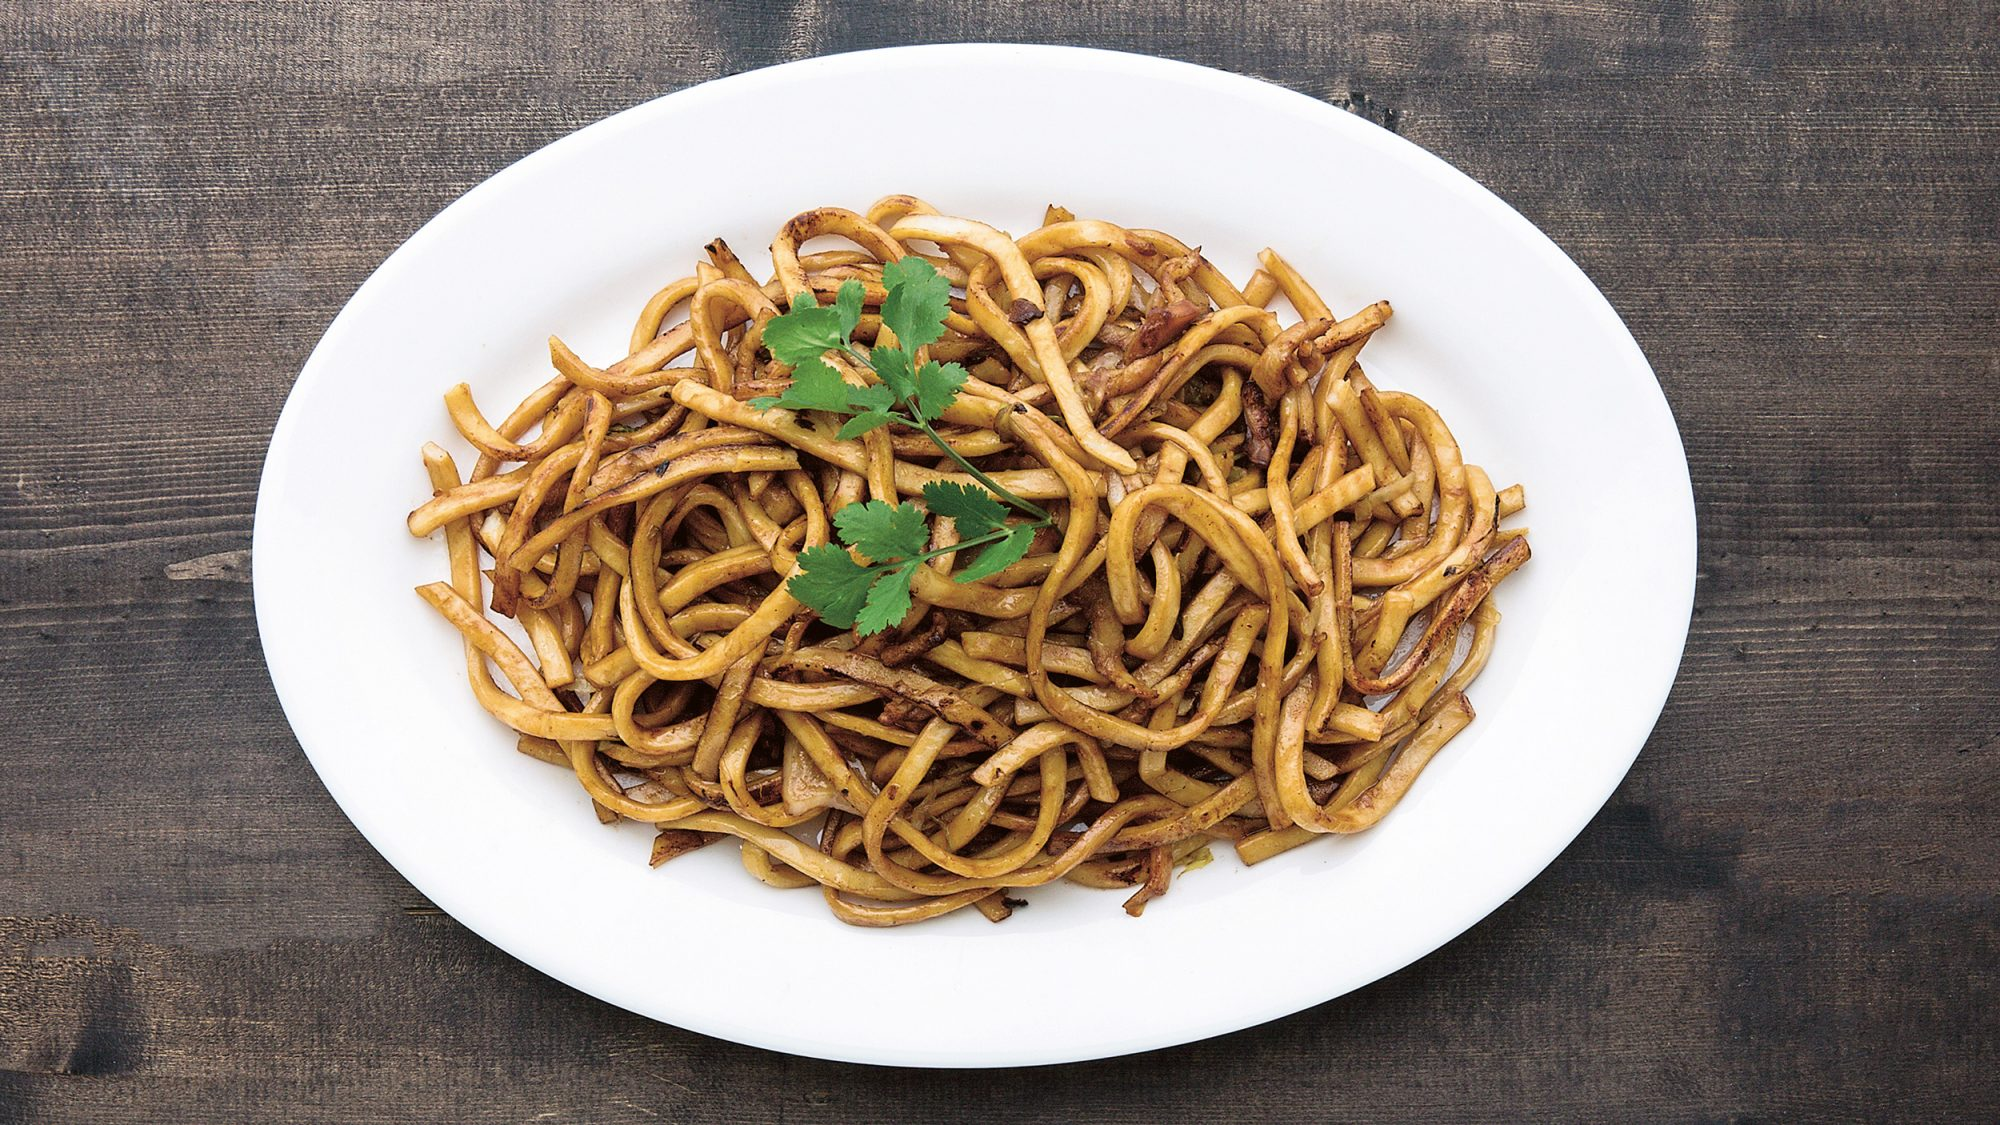 Stir-Fried Shanghai Noodles